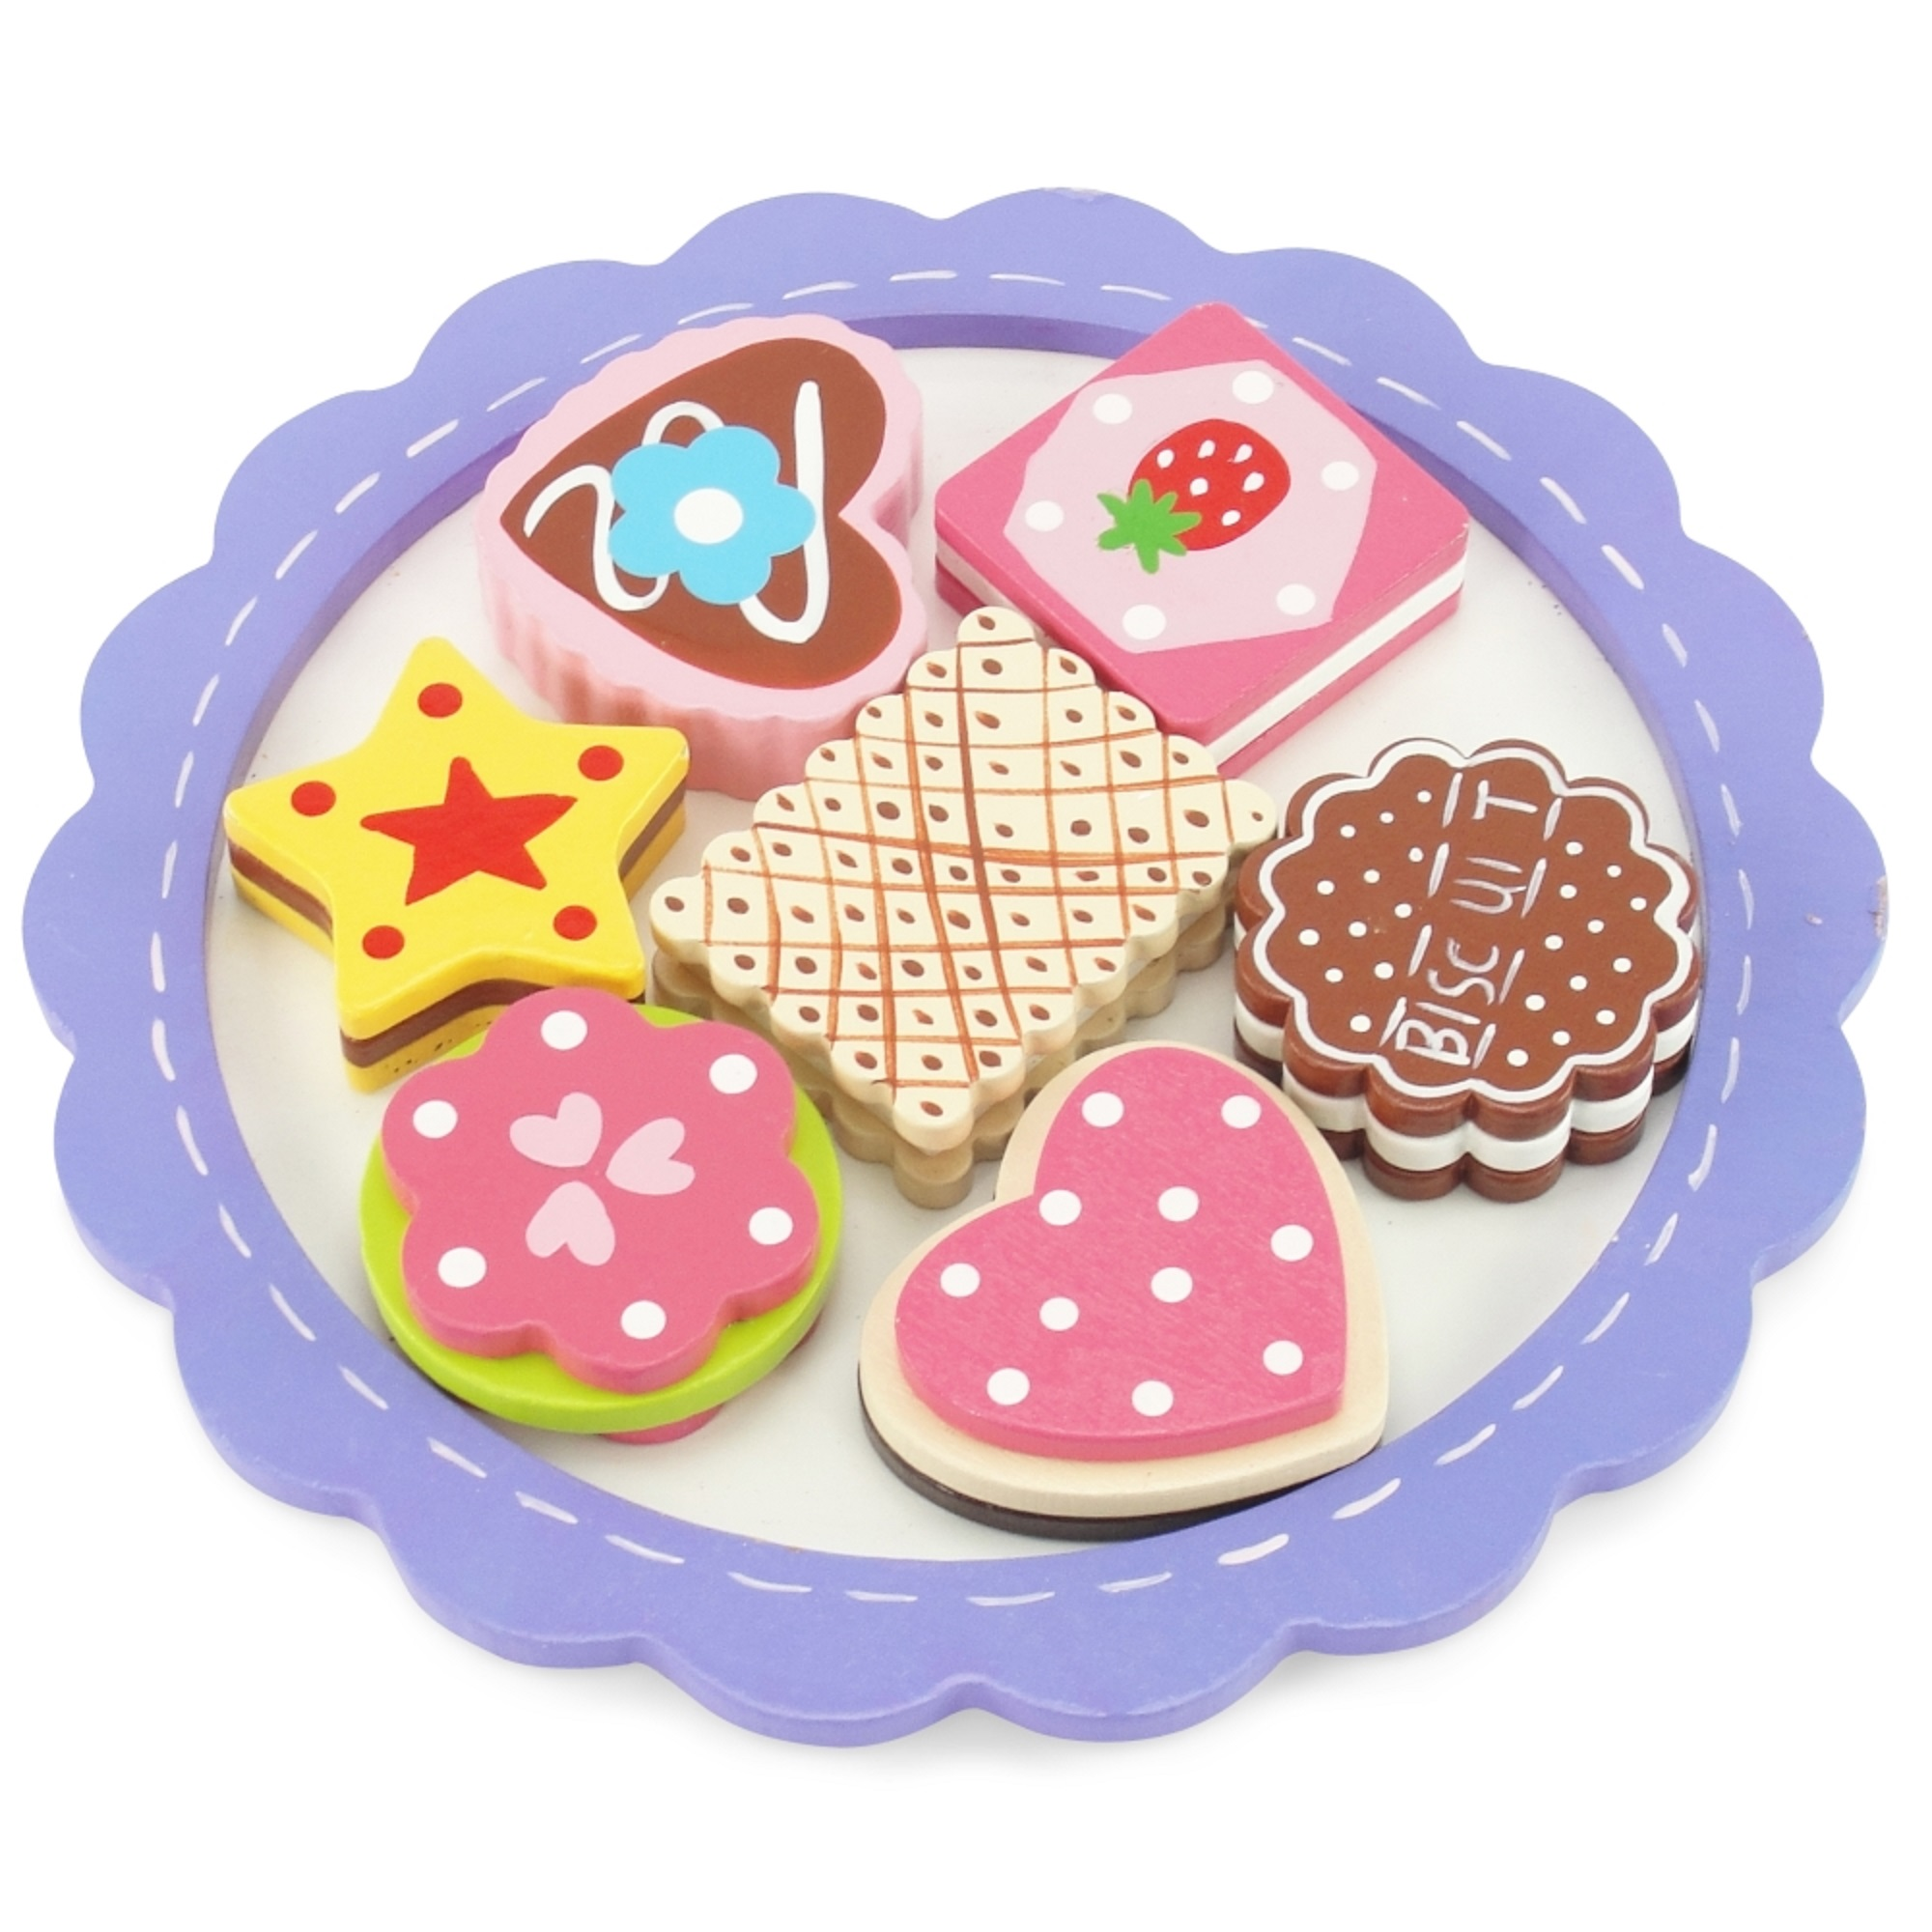 """18-inch Doll Food Accessories   8-piece Cookie Tray with Assorted Hand-painted Wooden Cookies   Fits 18"""" American Girl Dolls"""